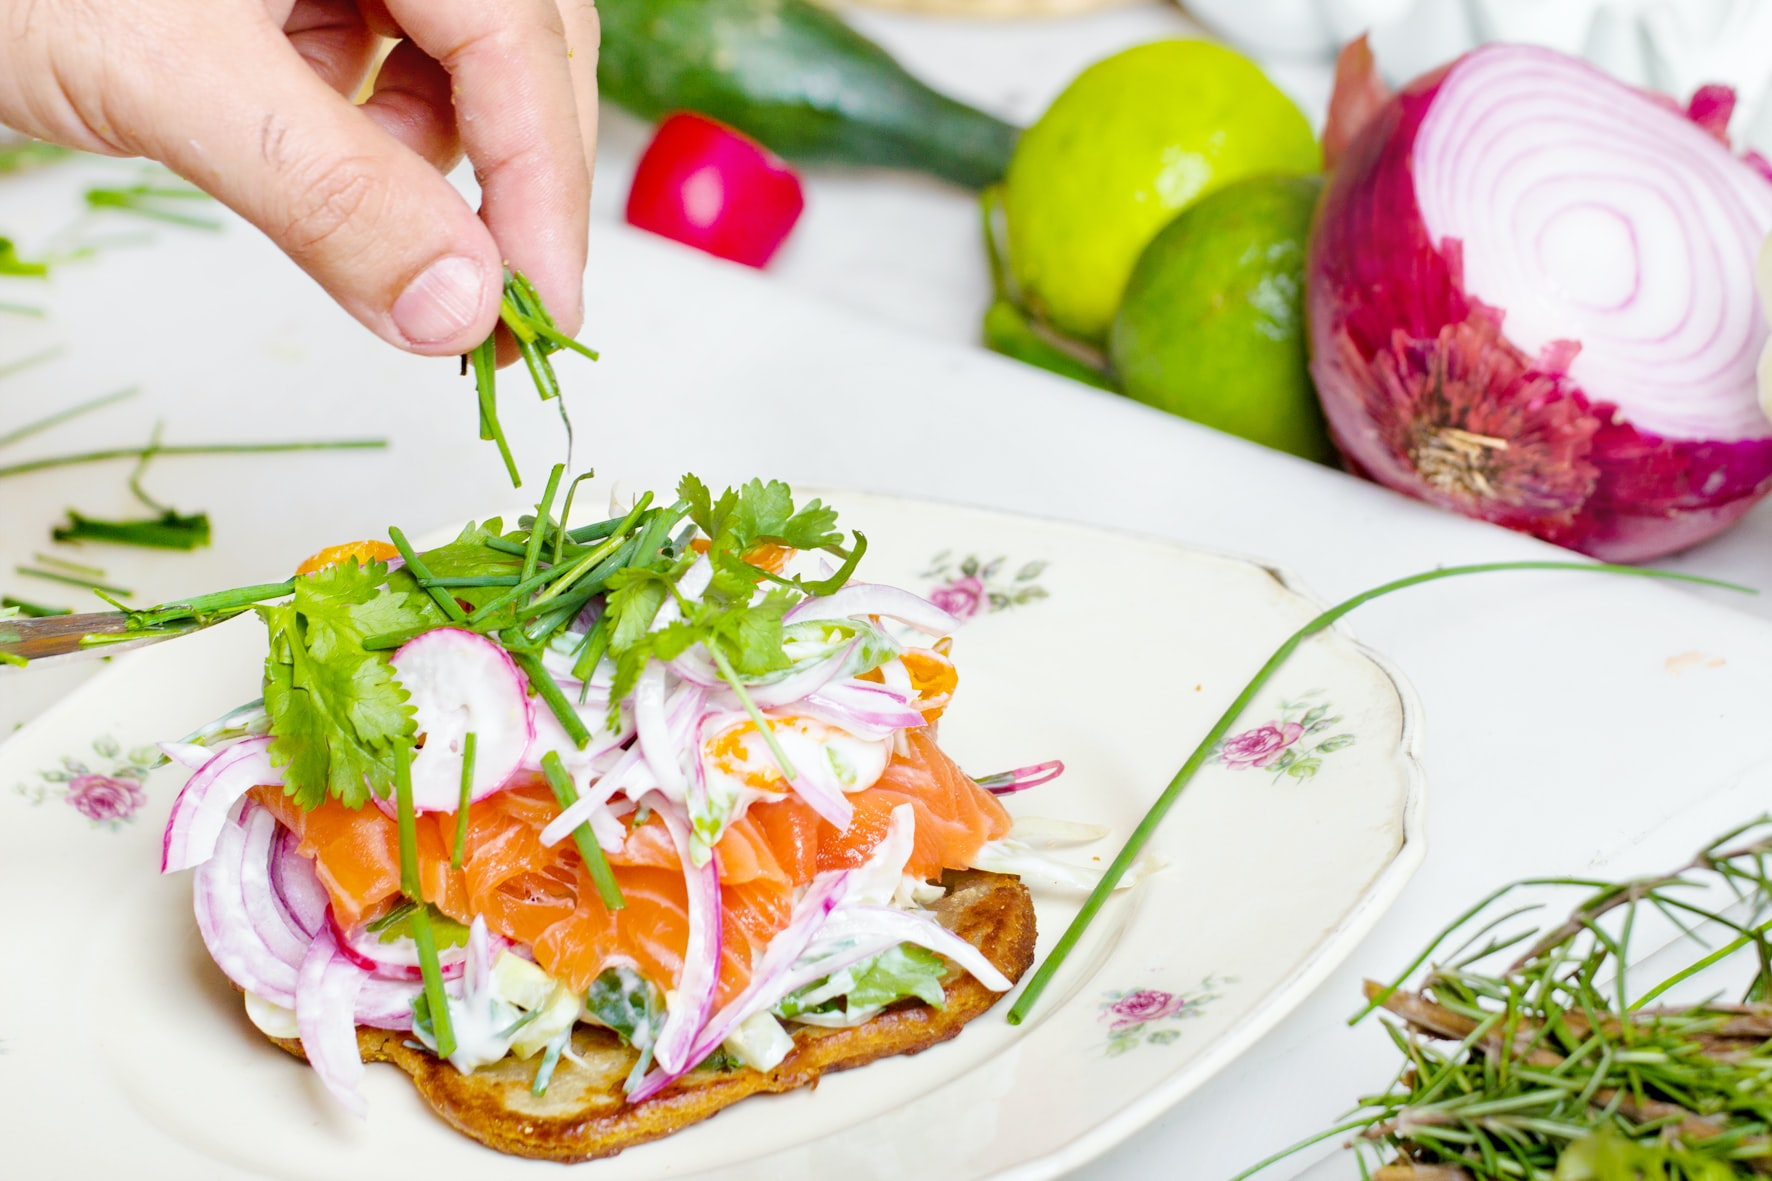 Longevity and Nutrition: How to Optimize Your Healthy Life